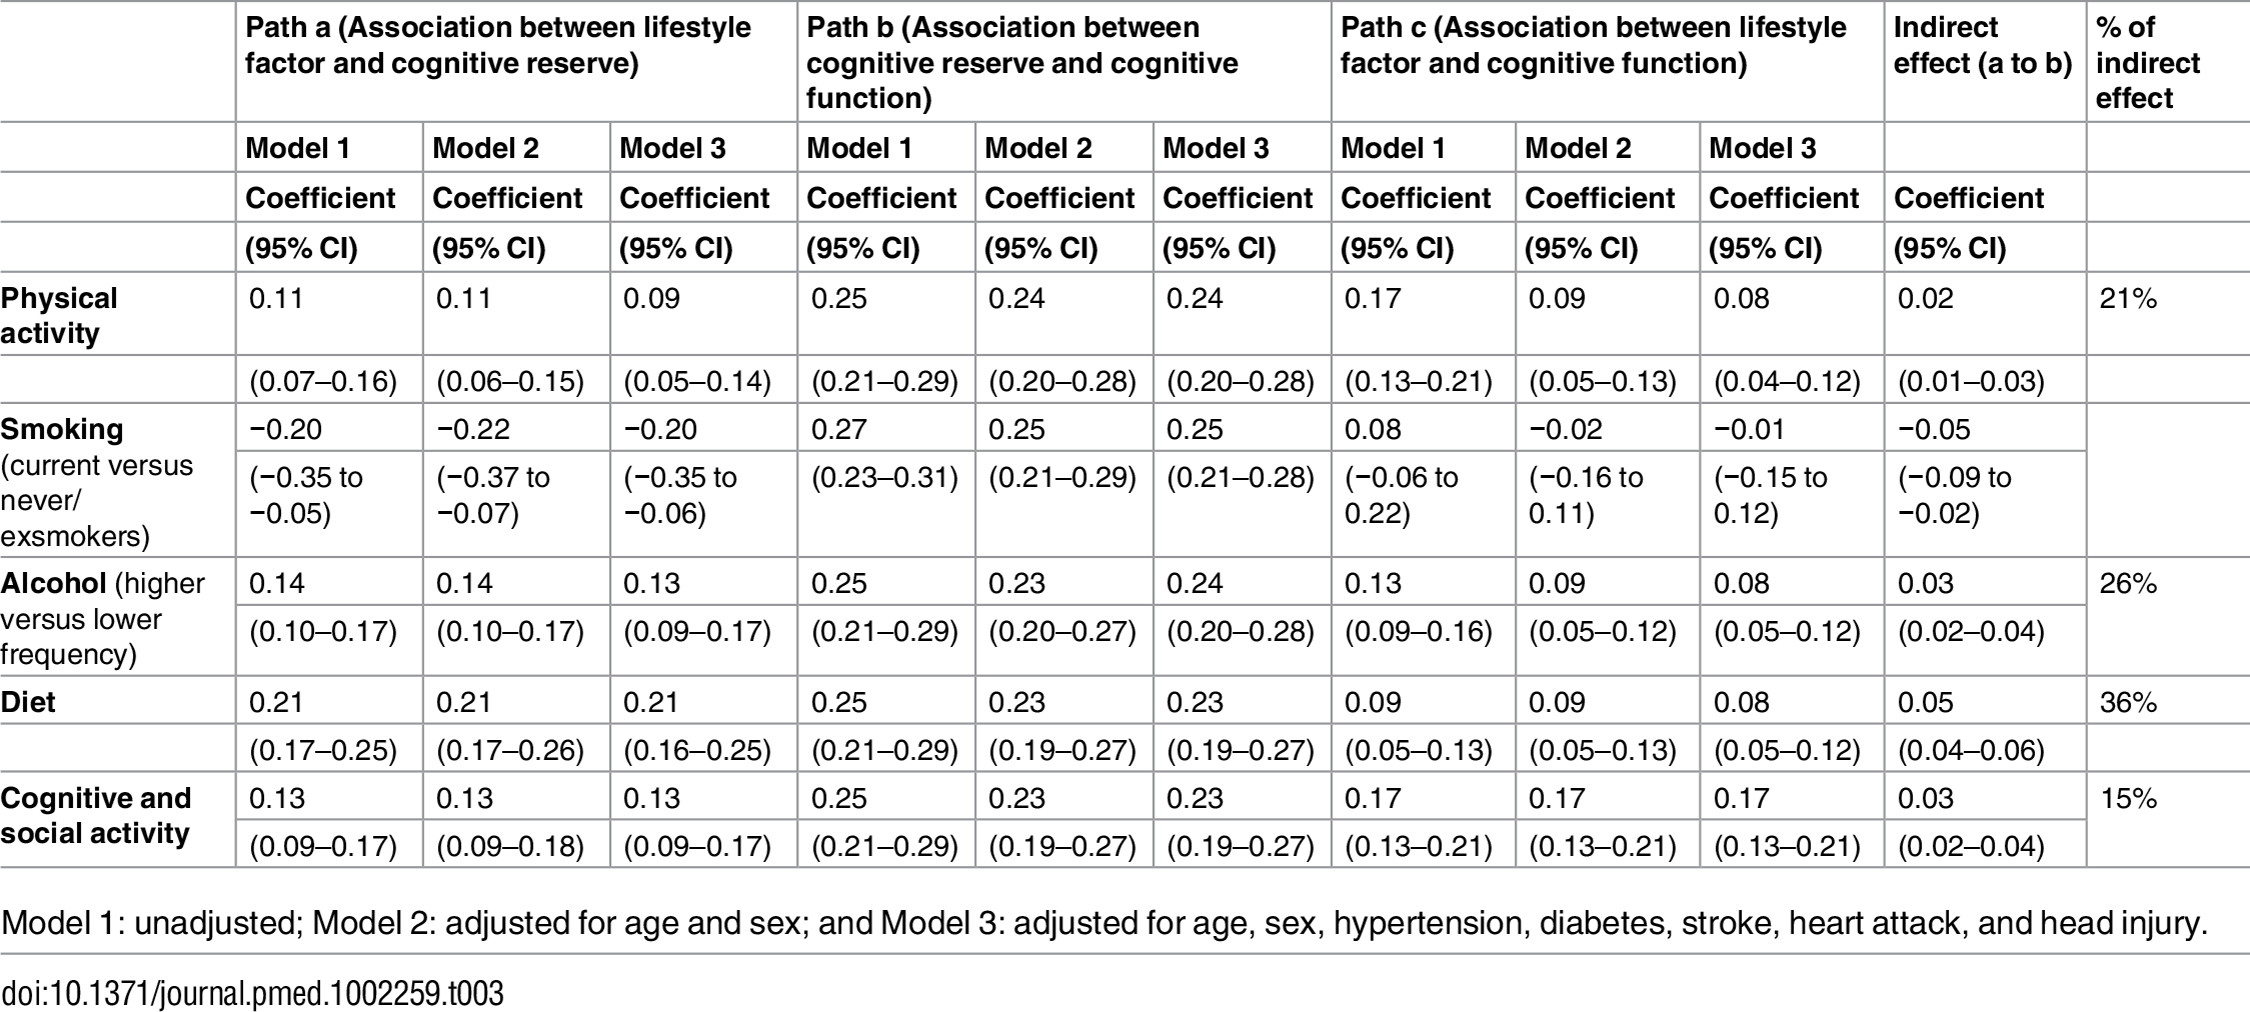 Mediation analysis of the effects of cognitive reserve on the association of lifestyle factors with cognitive function.